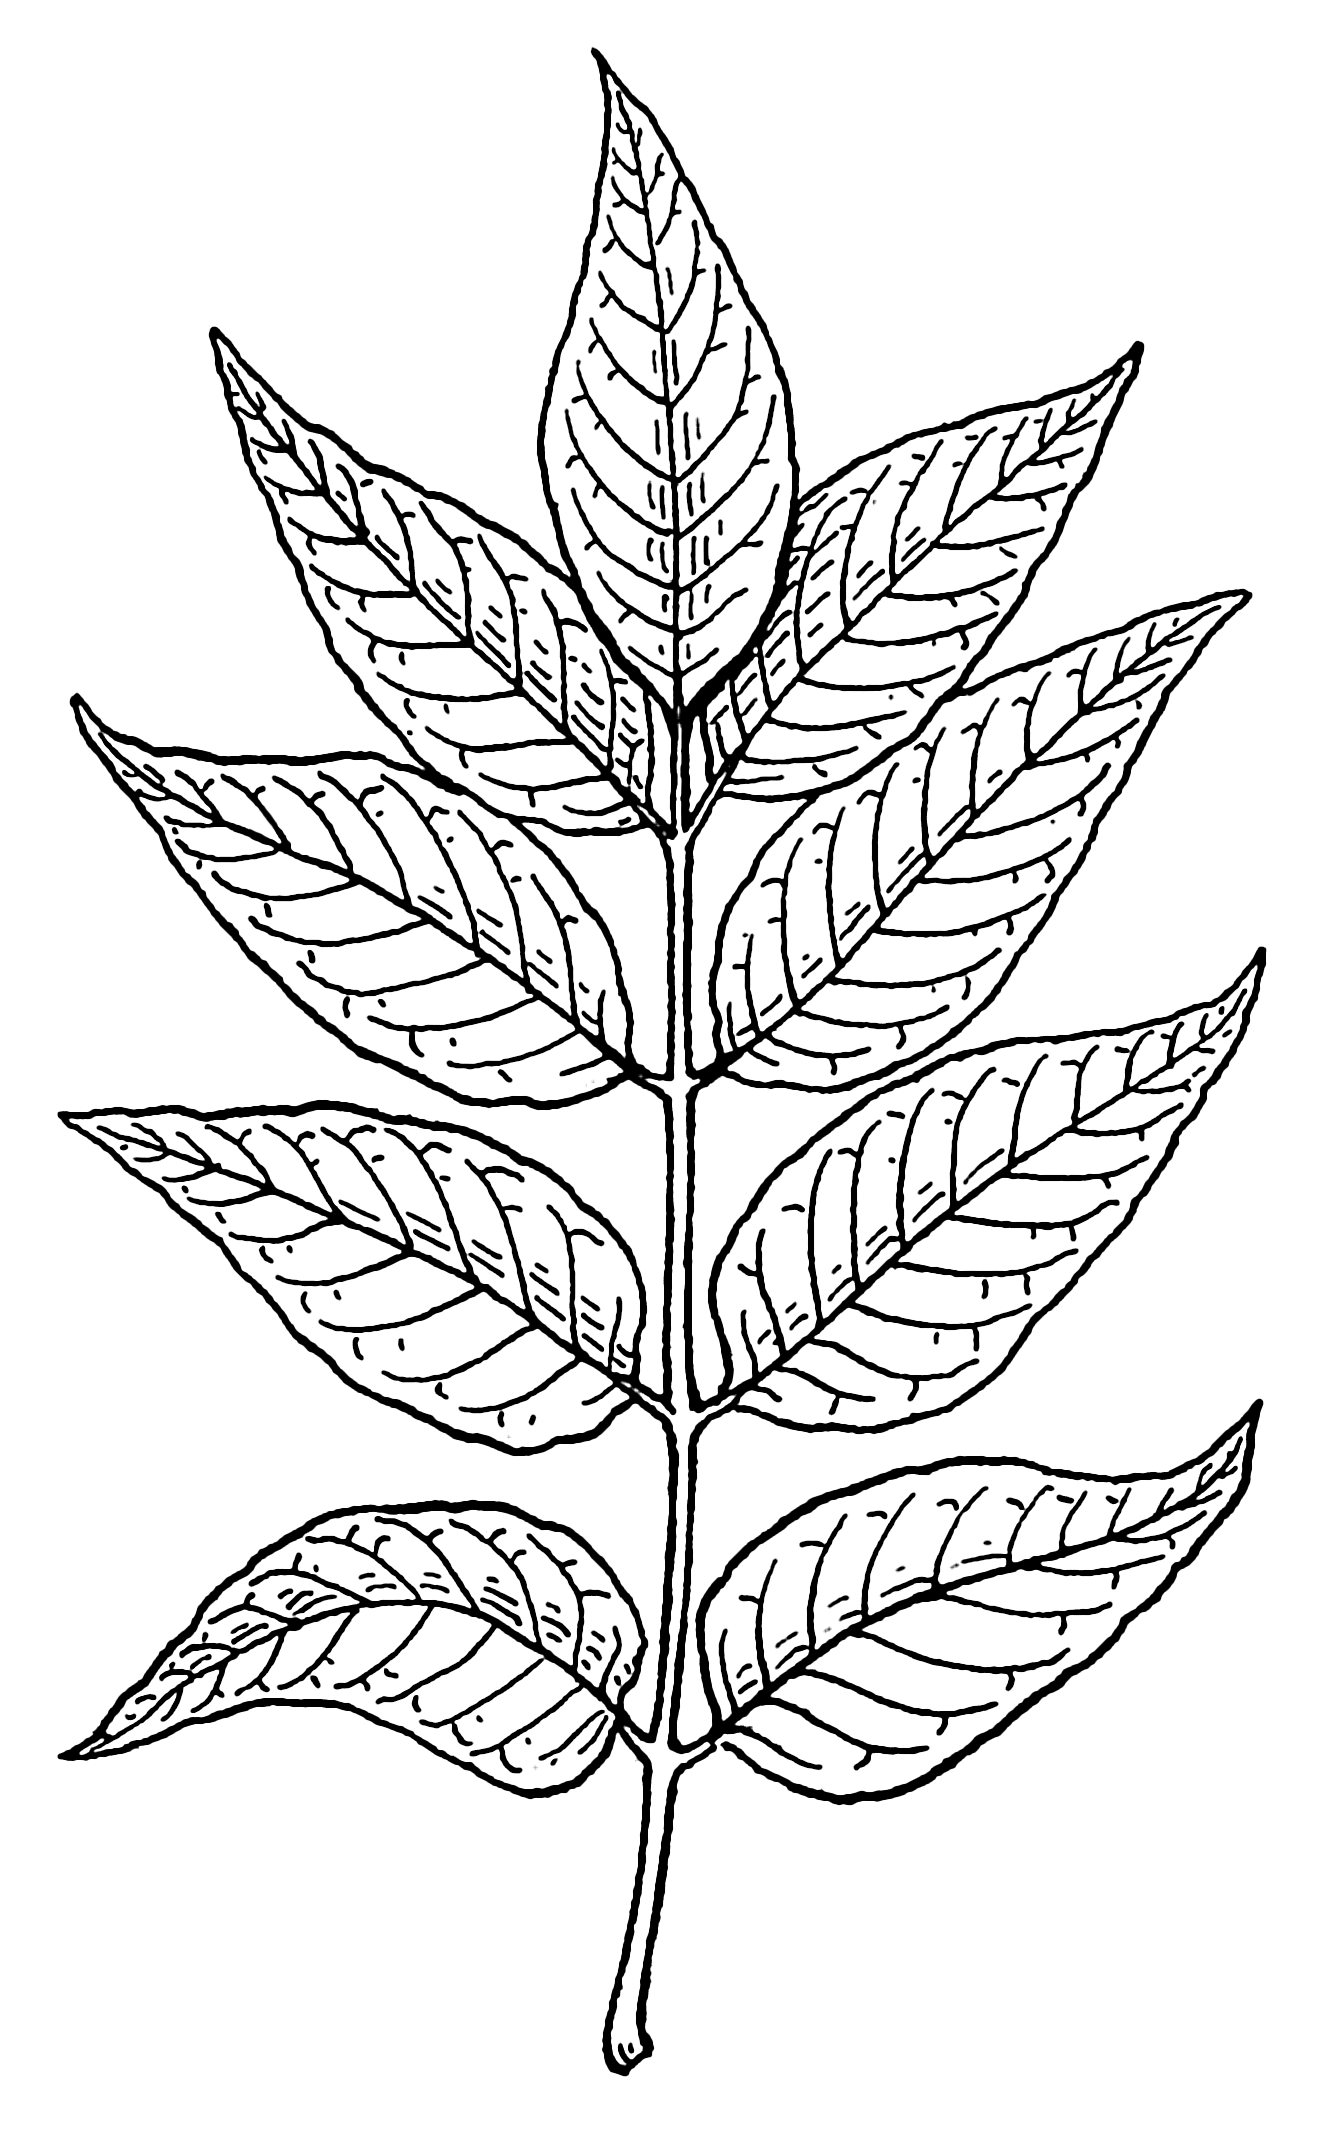 Tobacco Leaves Drawing Images & Pictures.